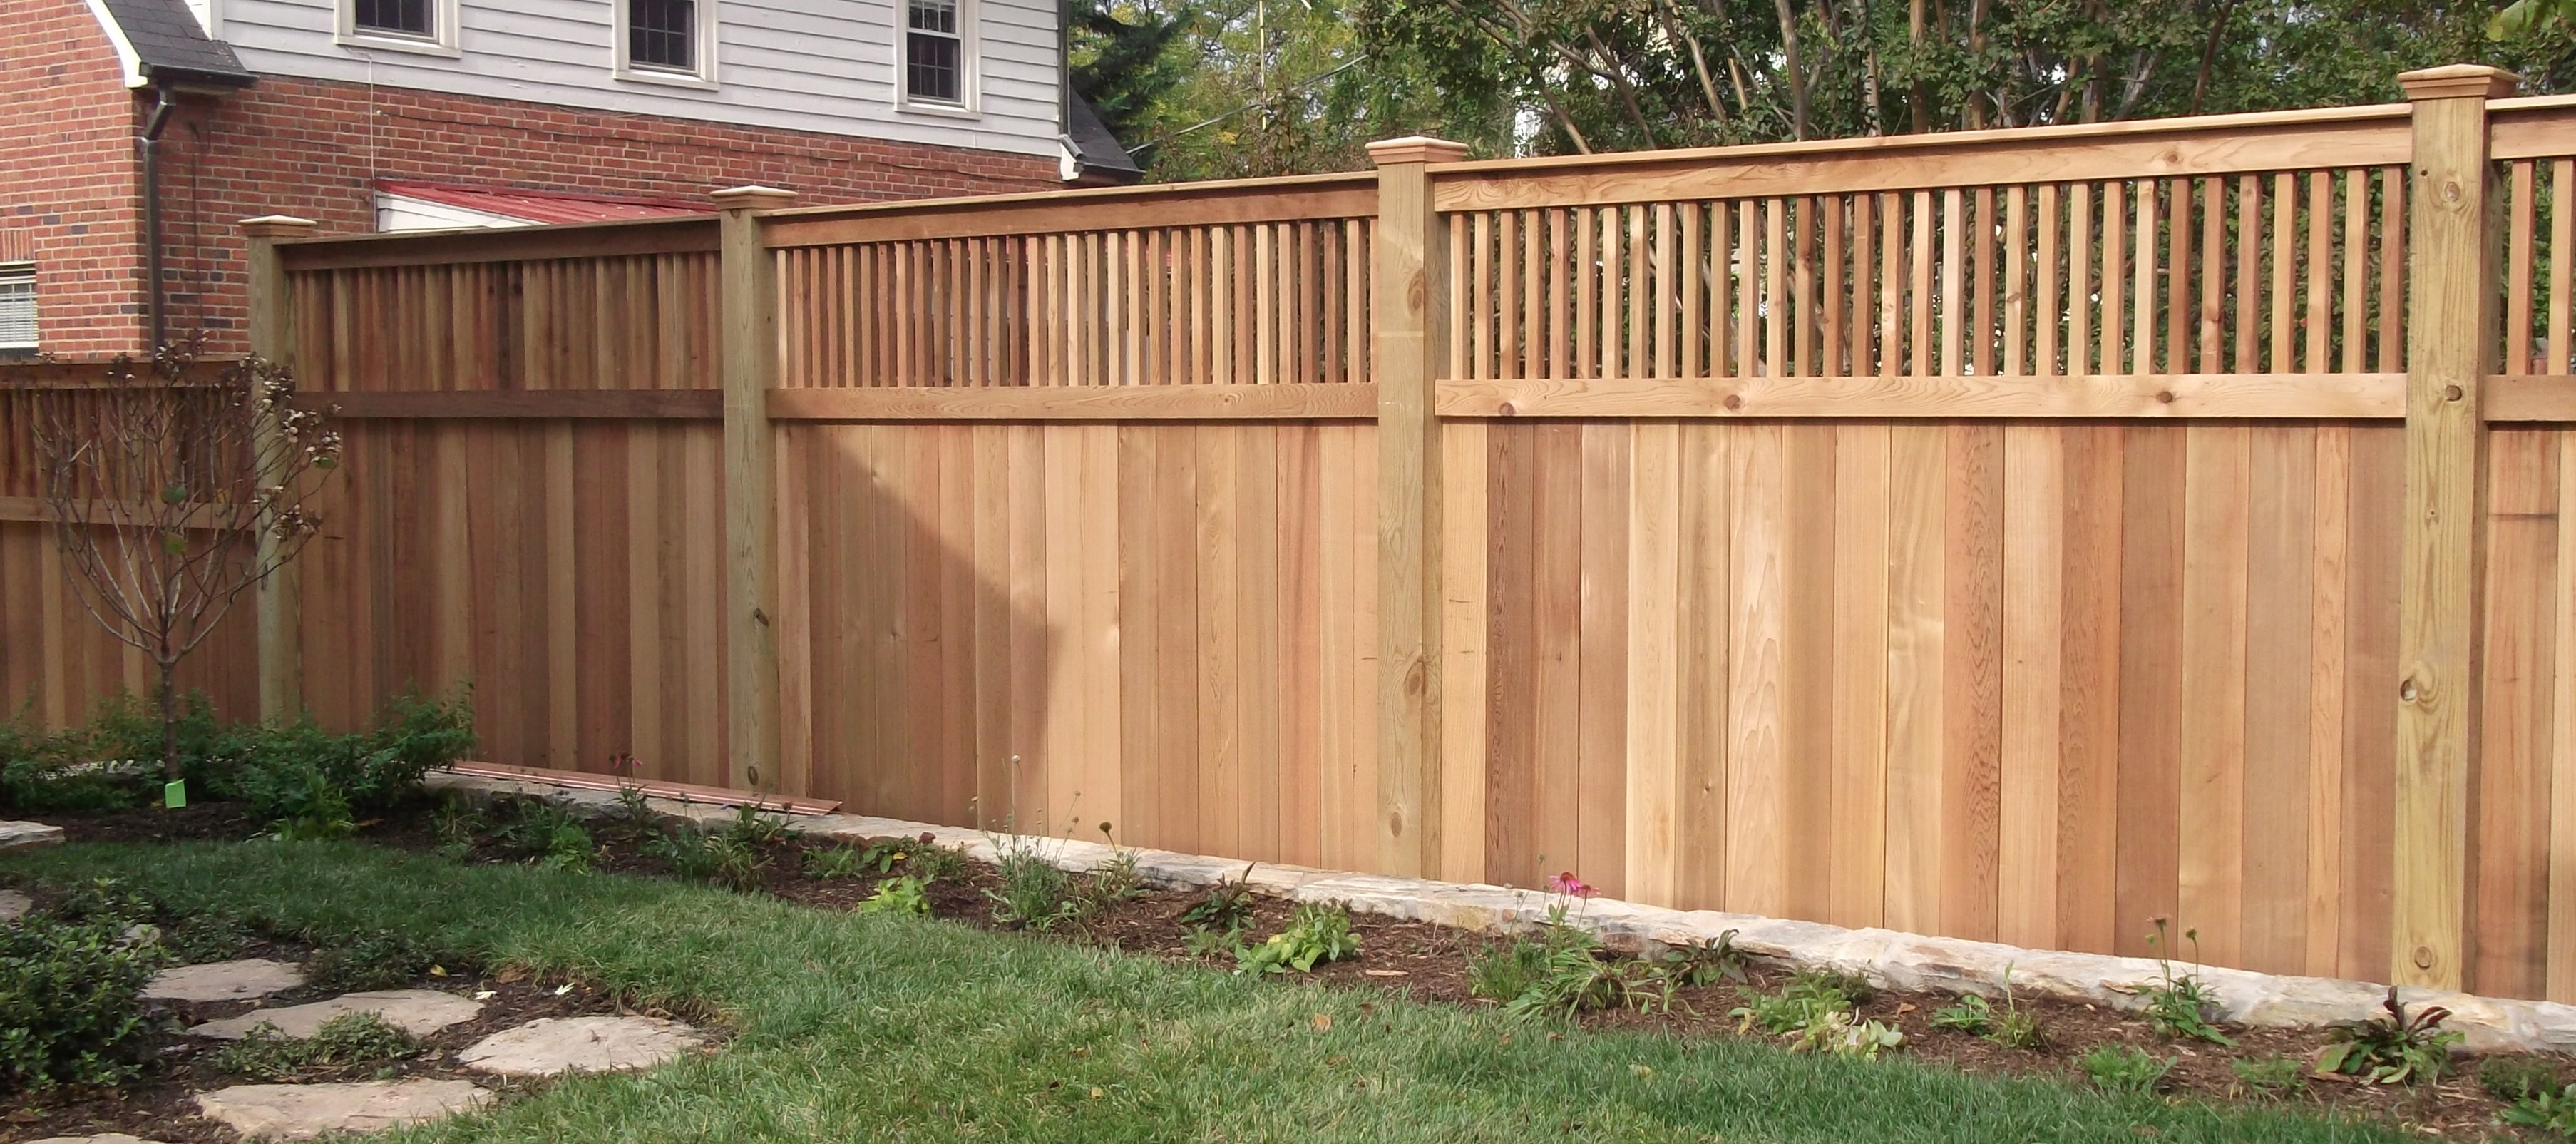 Different Styles Of Backyard Fences • Fences Design